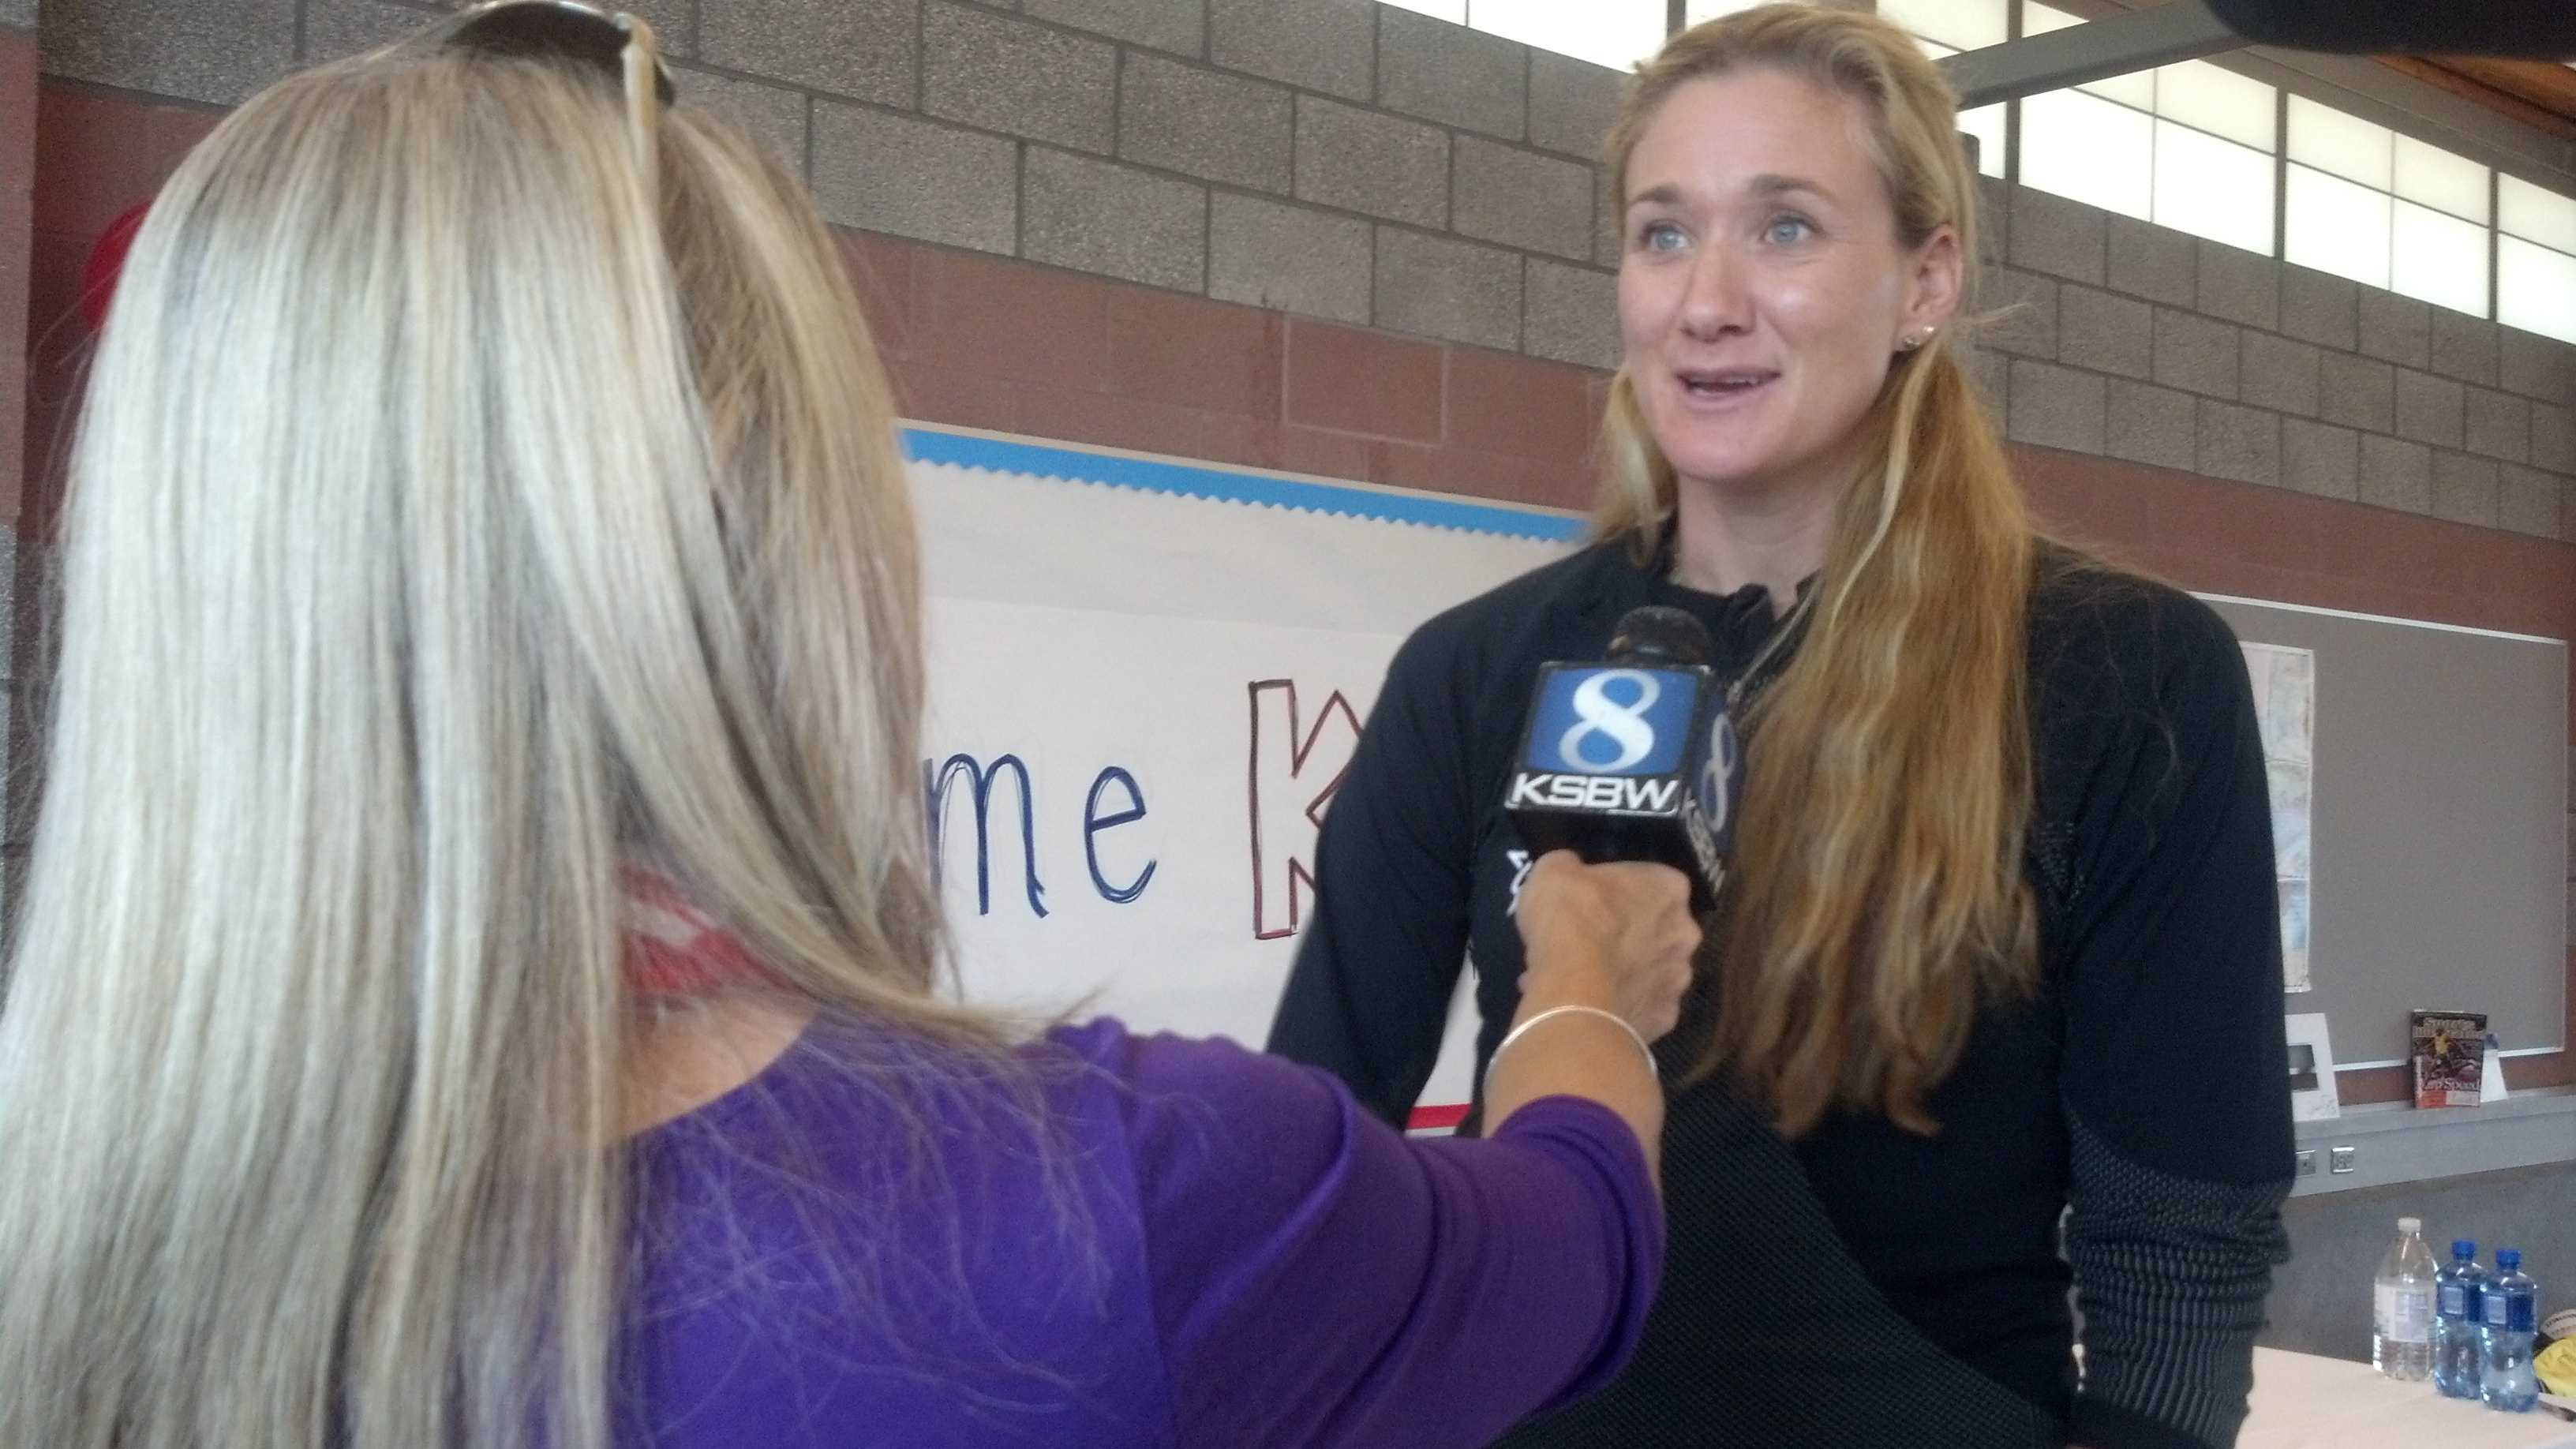 Action News Reporter Margot Dunphy interviews Olympian Kerri Walsh